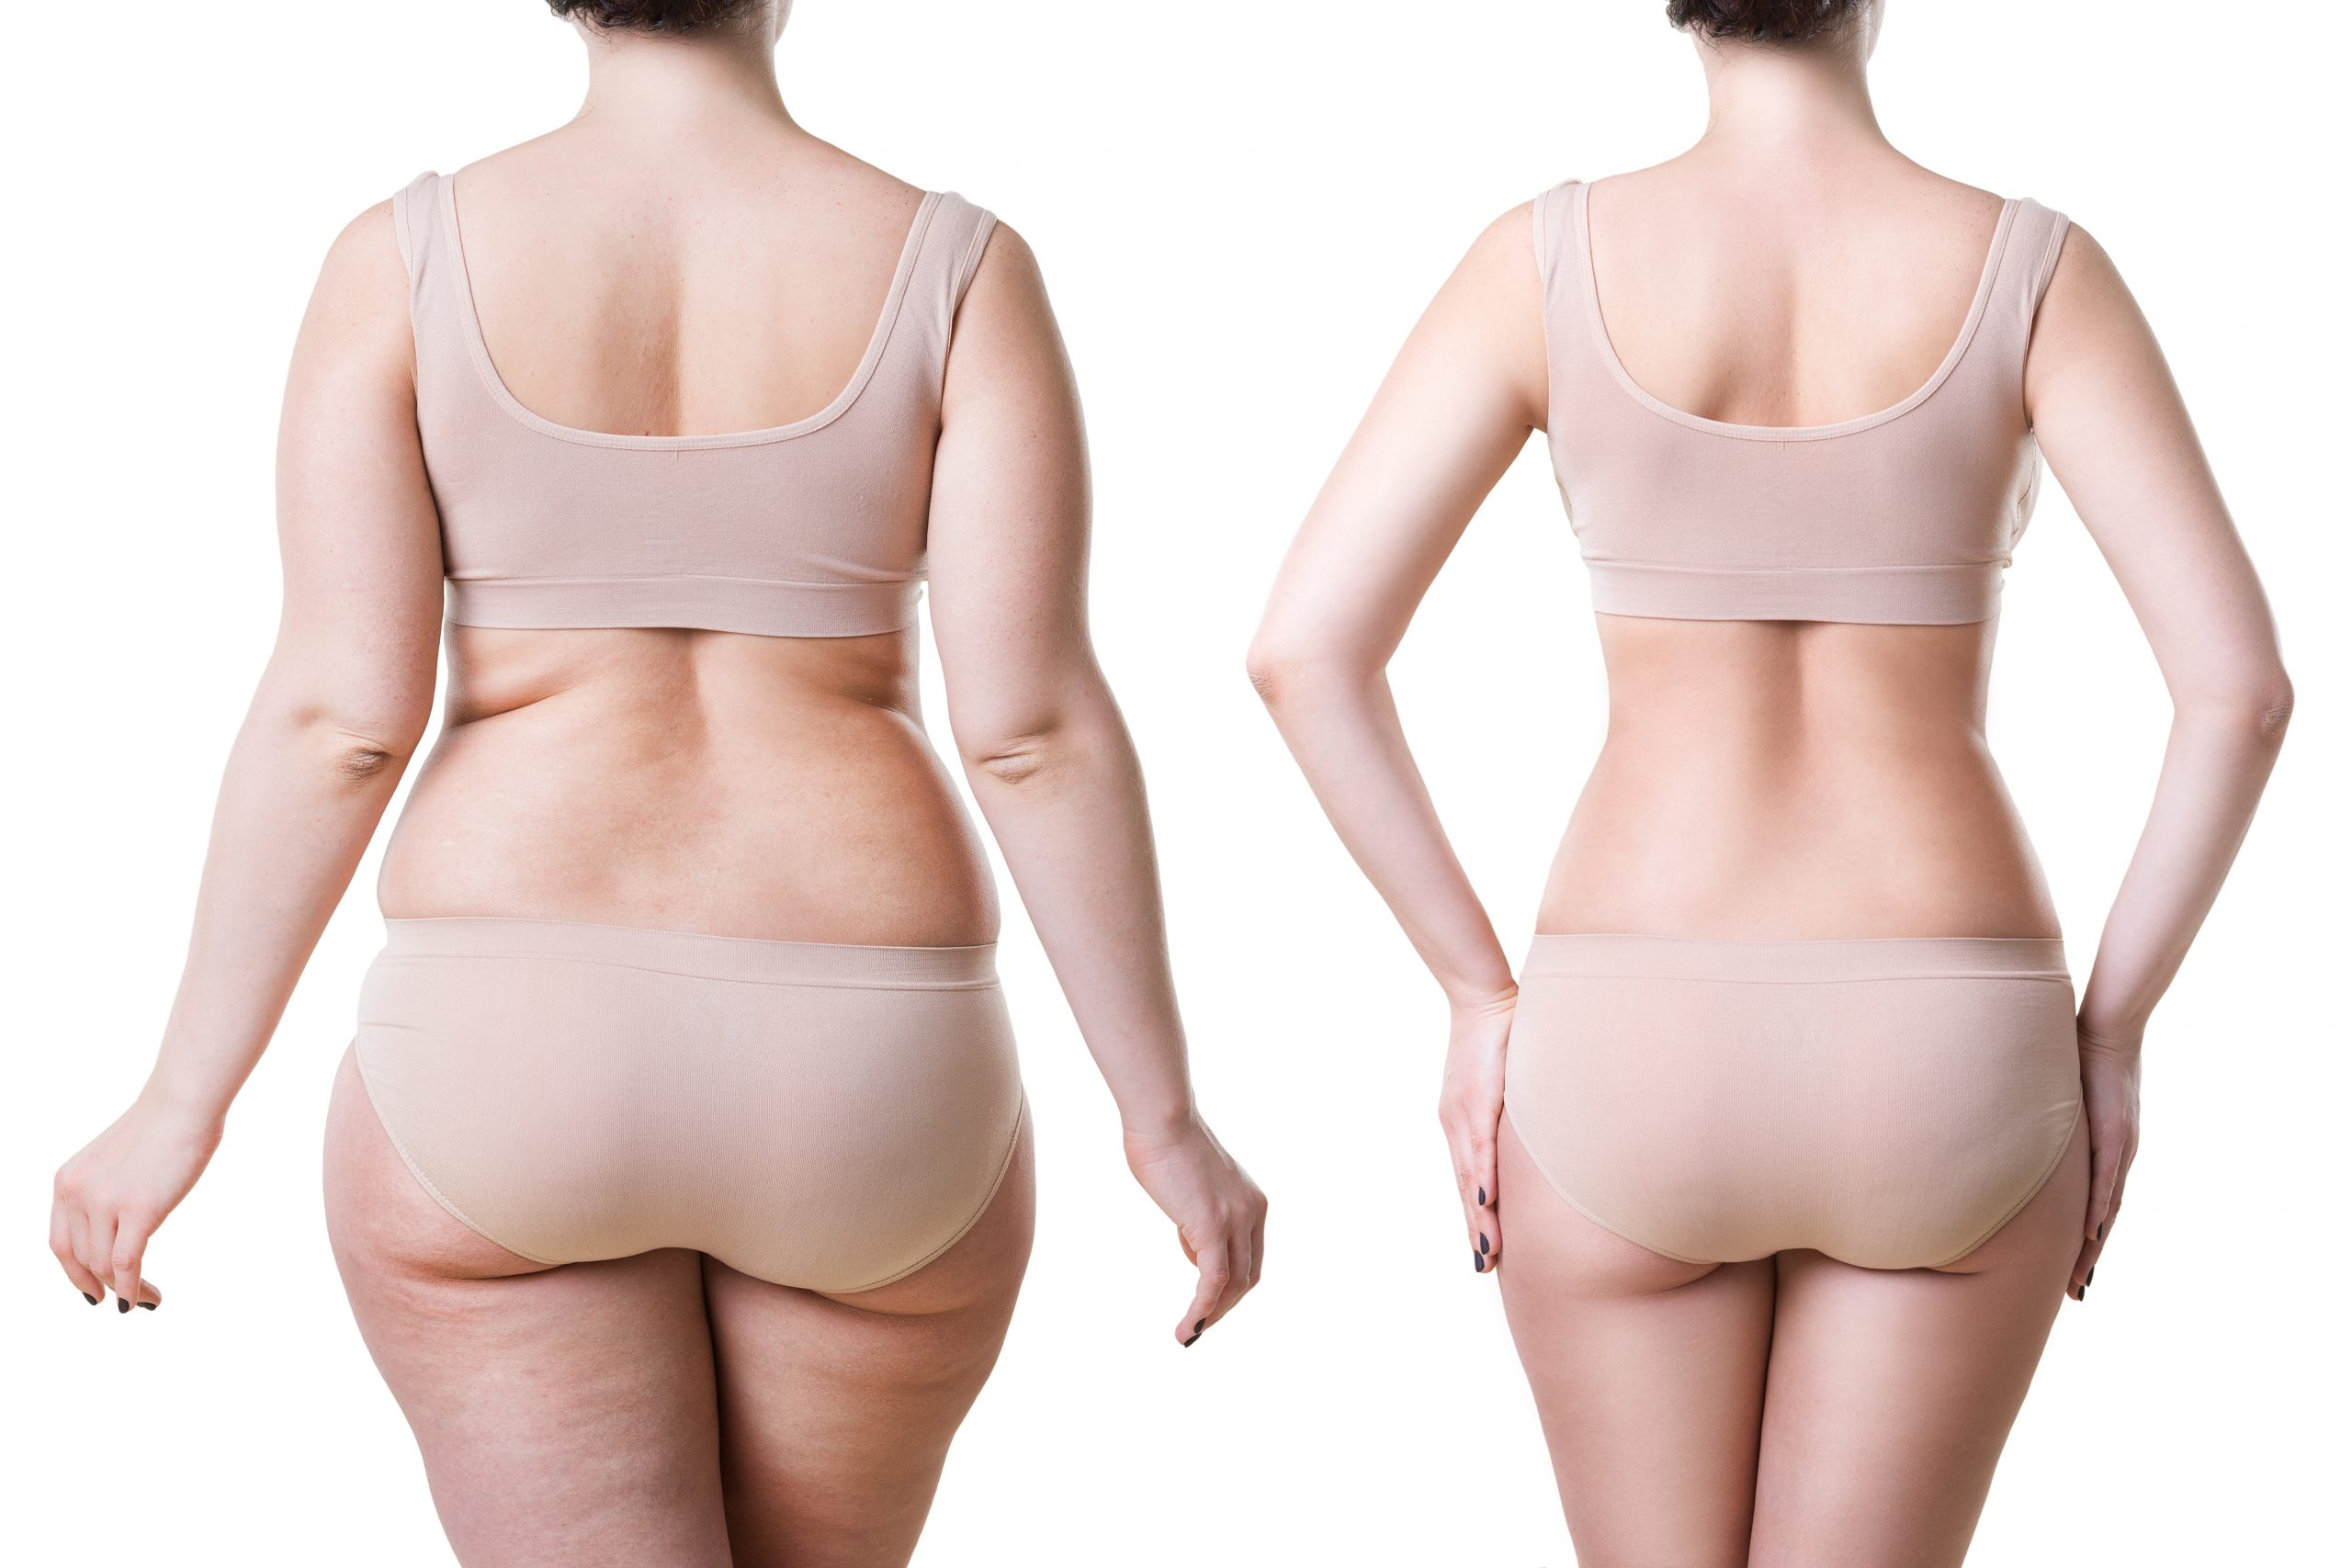 Dermacore body sculpting, fat loss, fat reduction, permanent, inch loss, non-invasive telford shropshire